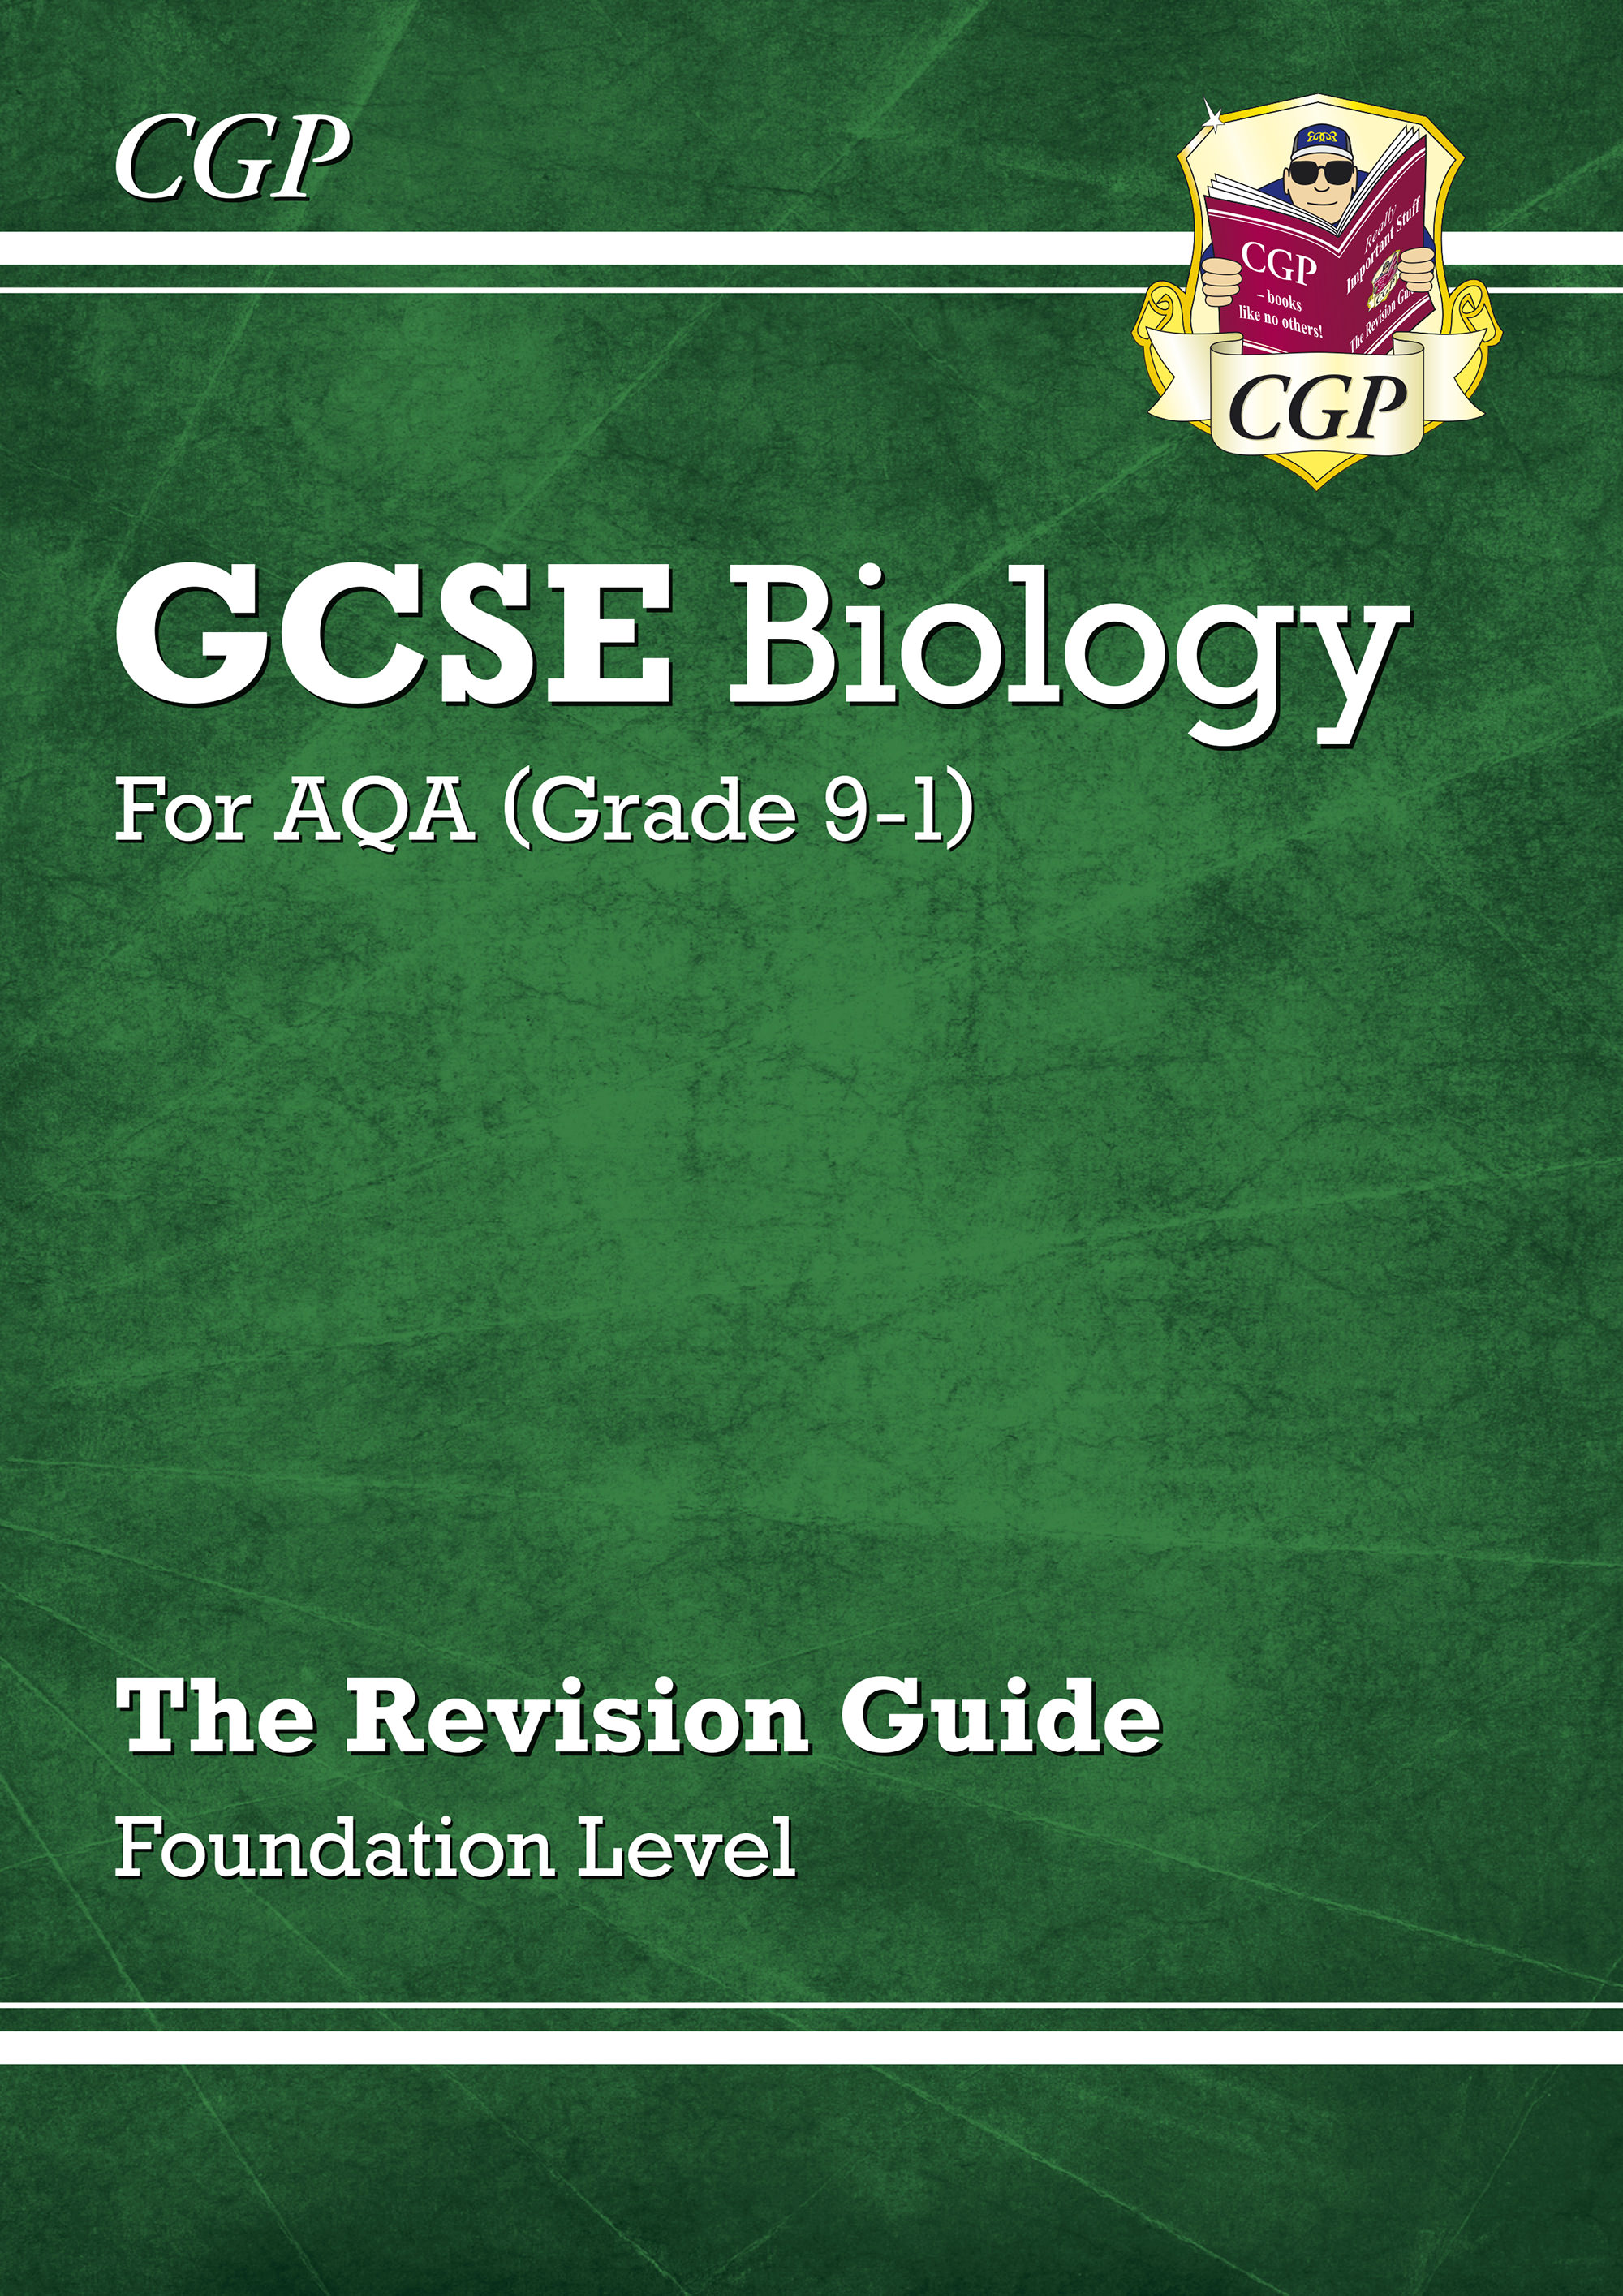 BAFR41DK - New Grade 9-1 GCSE Biology: AQA Revision Guide - Foundation